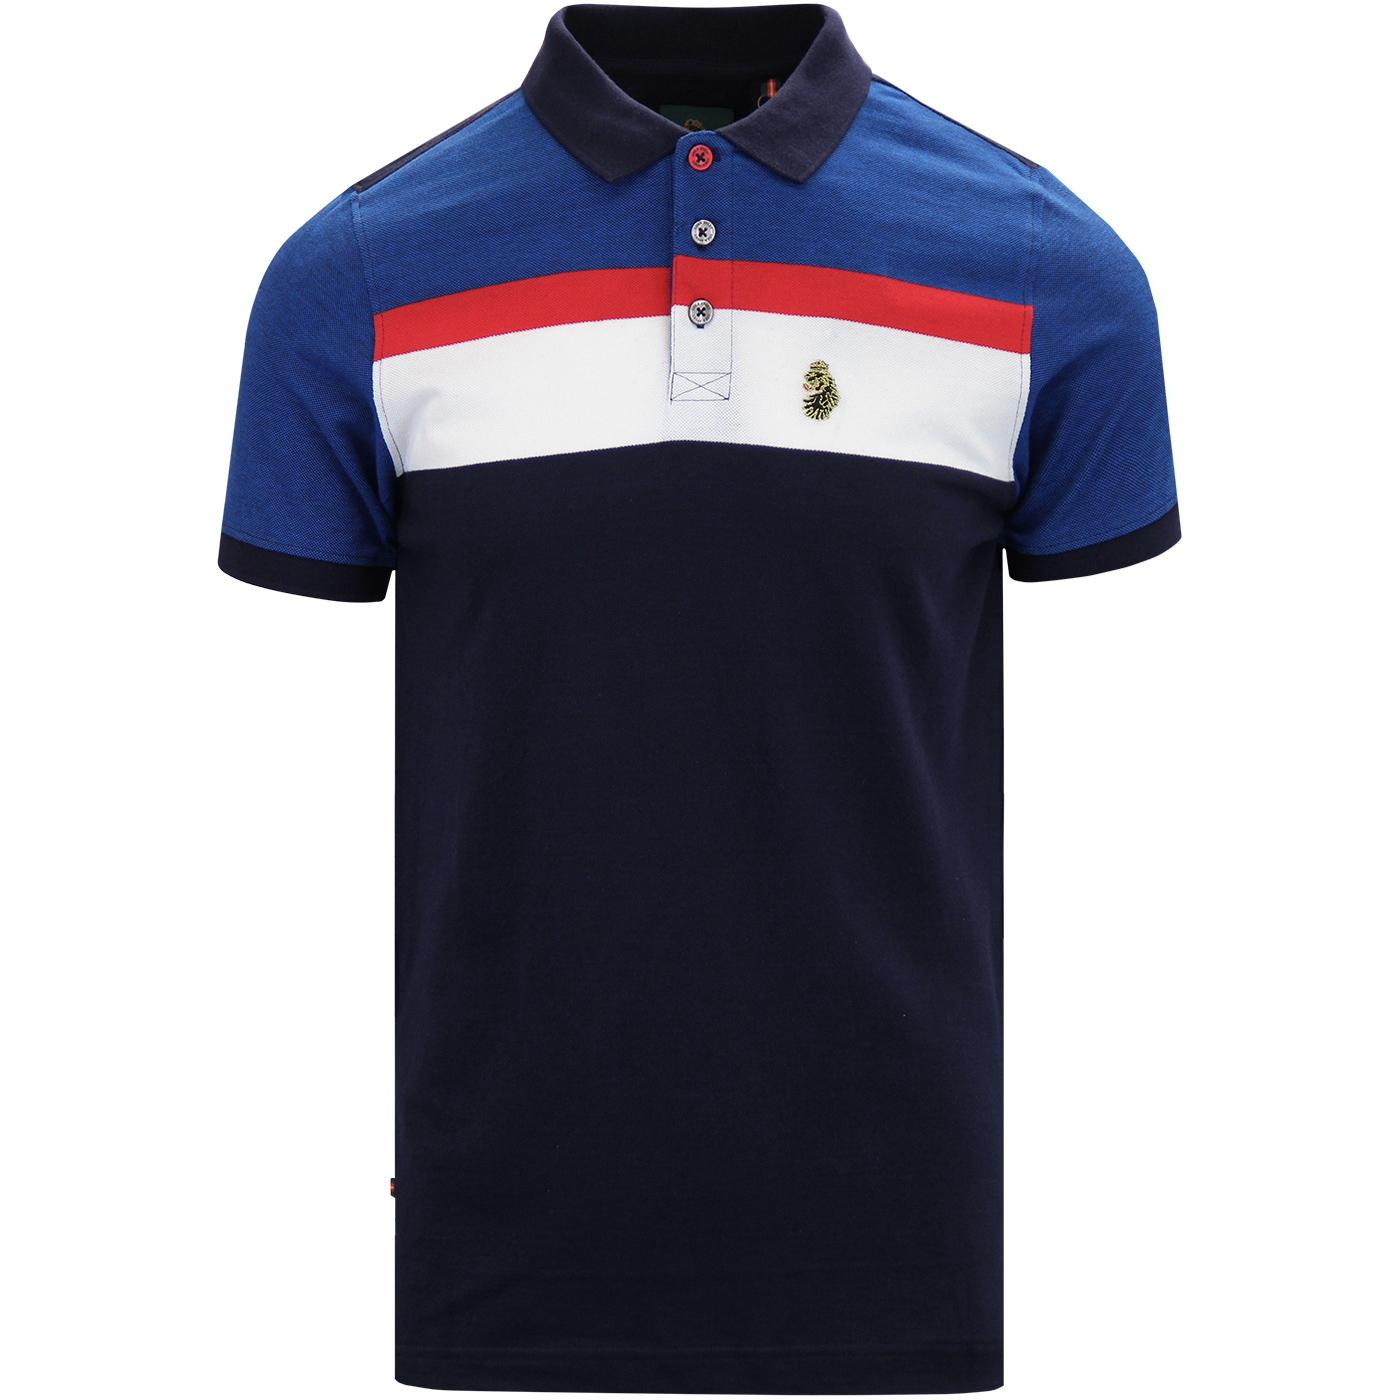 Grayson LUKE Retro Mod Stripe Panel Polo Top NAVY